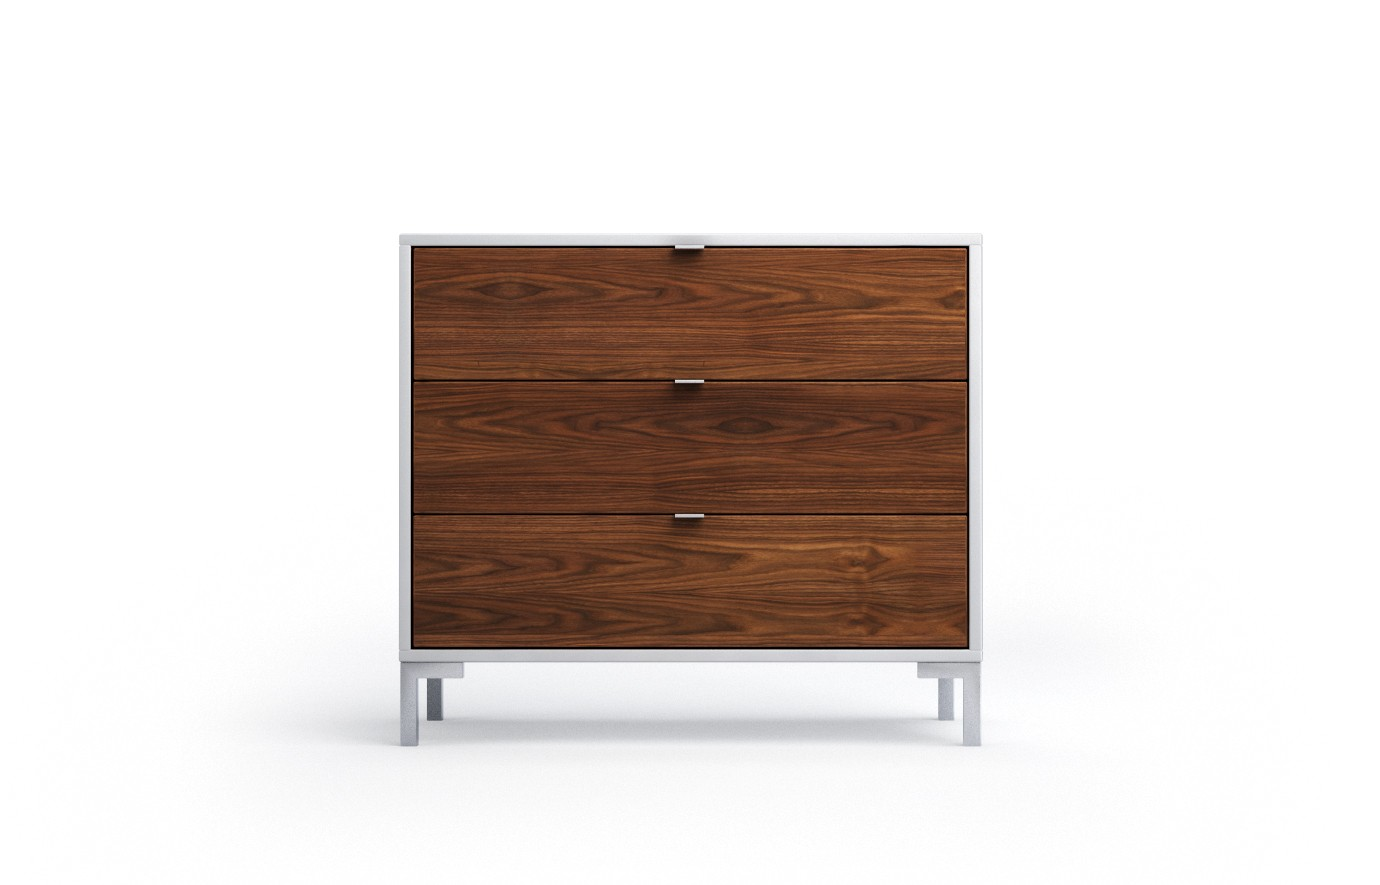 sideboard nussbaum weis hochglanz die neuesten innenarchitekturideen. Black Bedroom Furniture Sets. Home Design Ideas